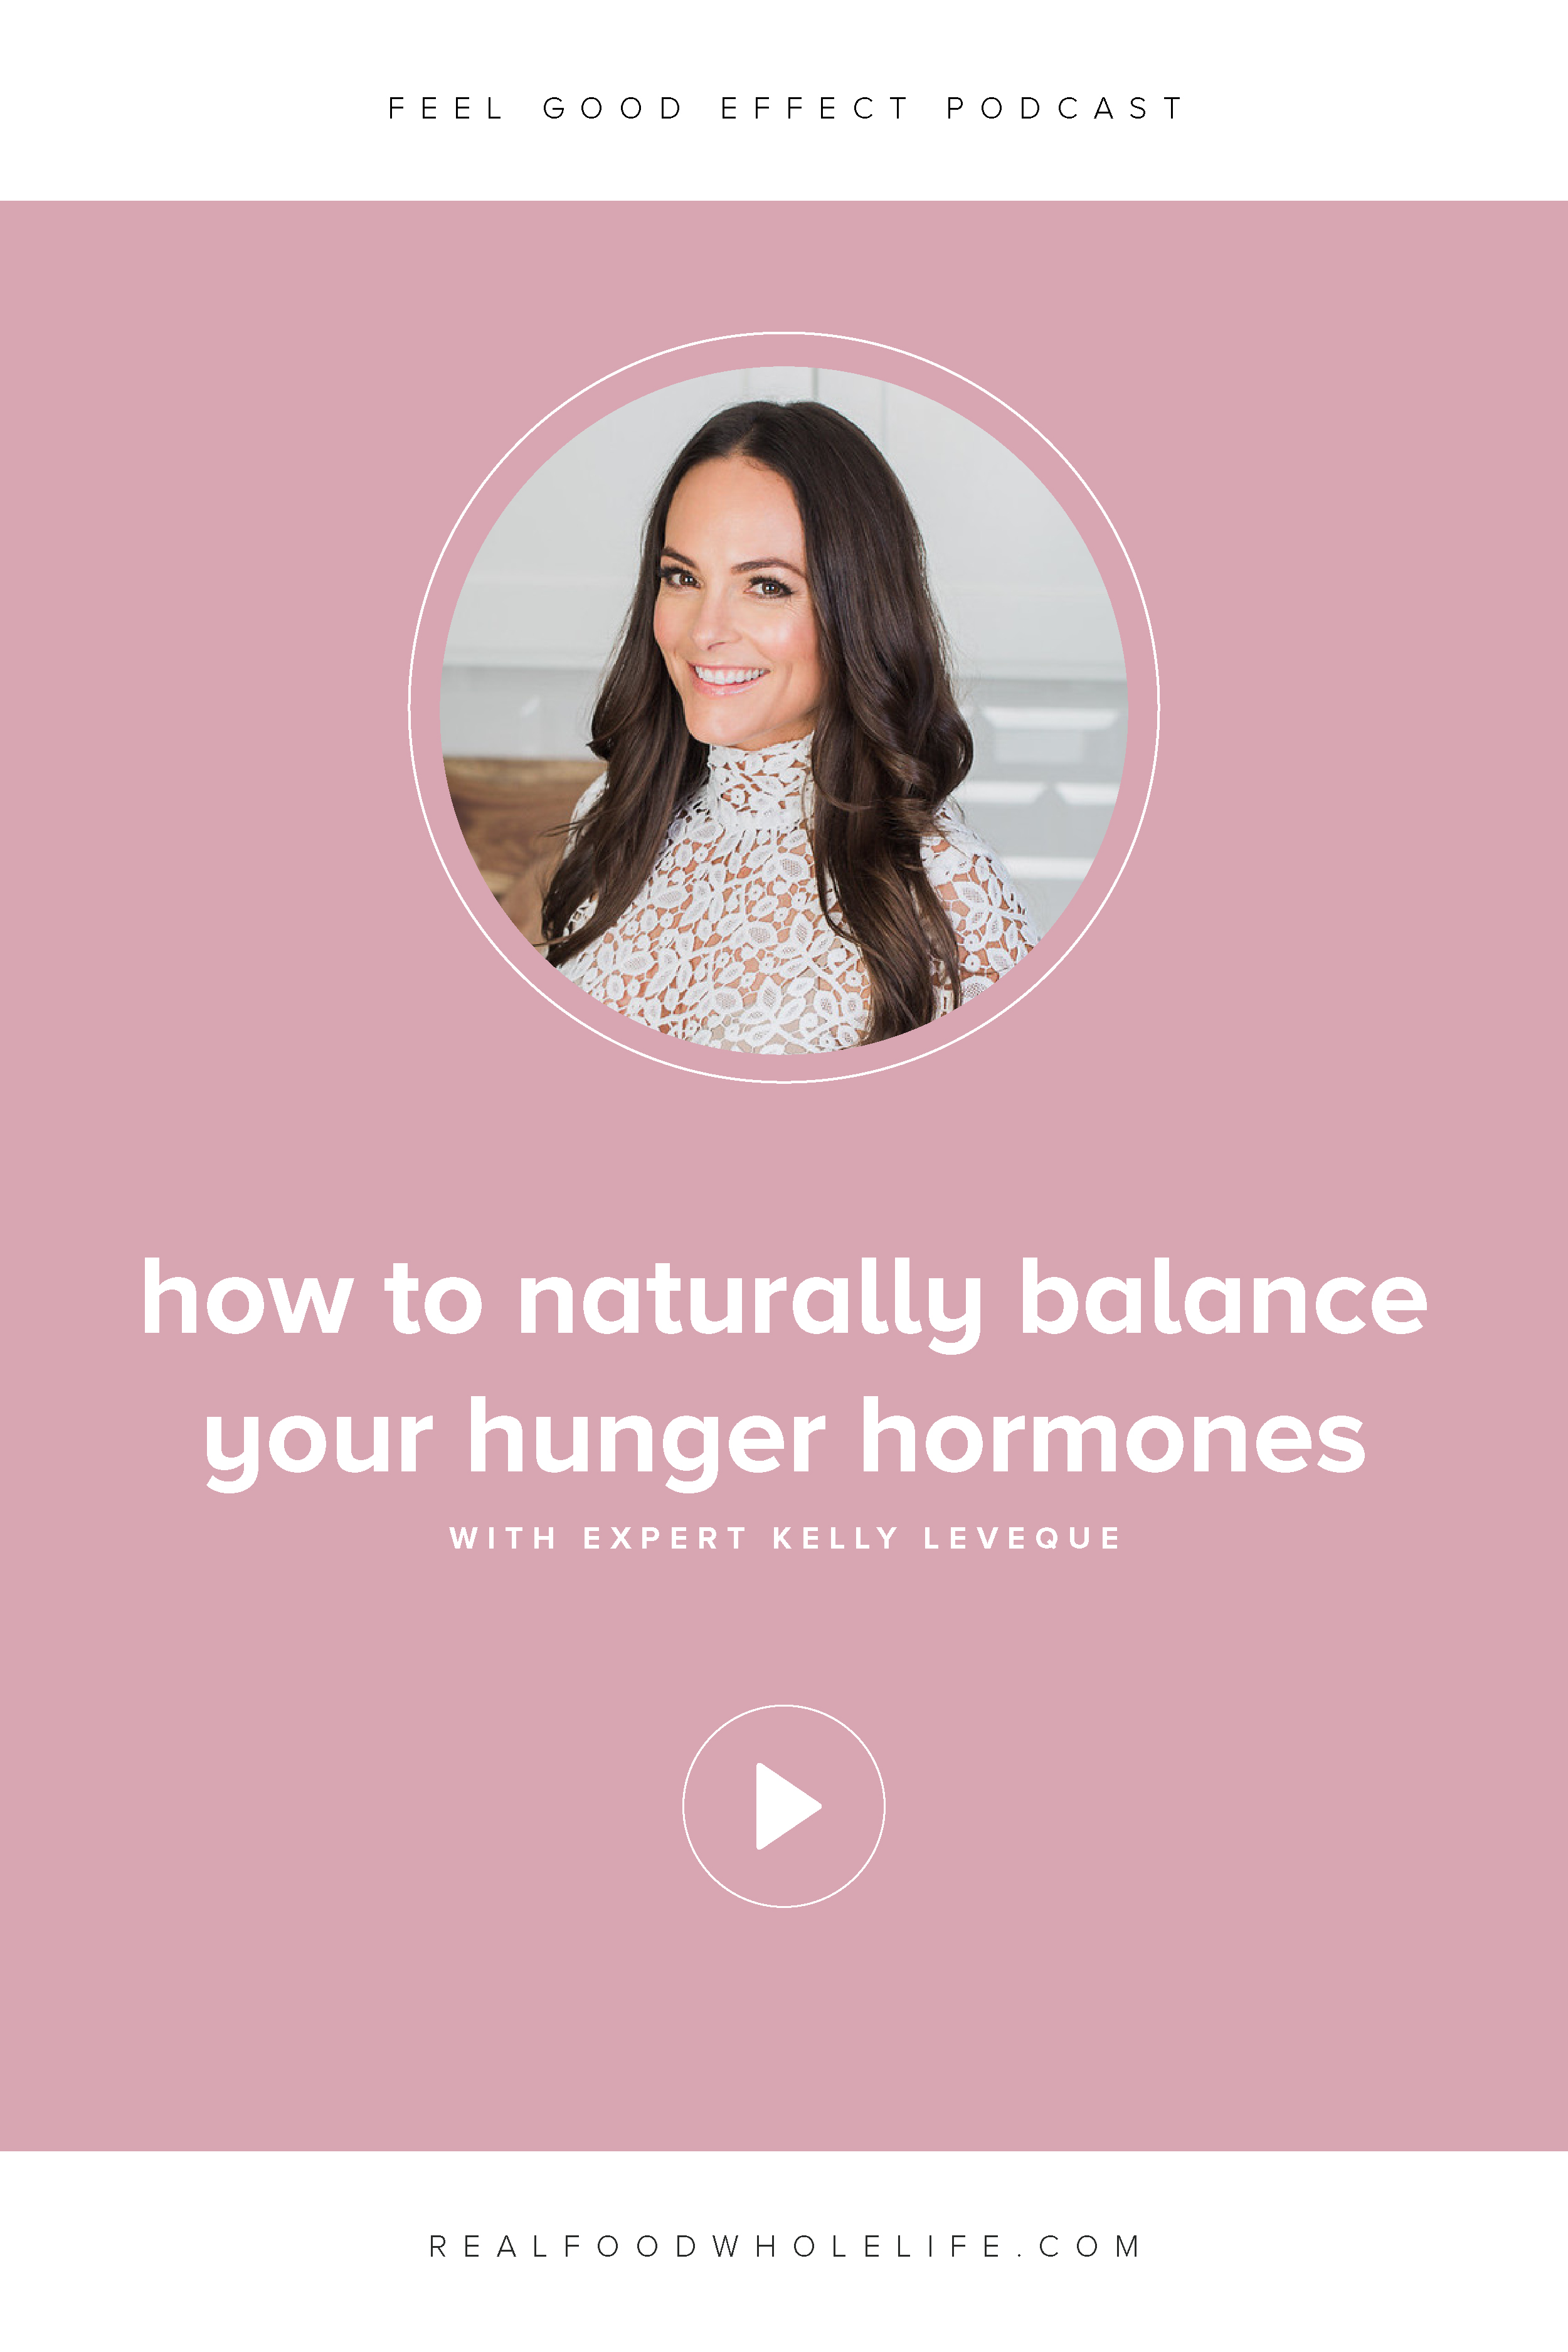 An interview with Nutritionist to the stars, Kelly LeVeque Kelly on how to naturally balance your hunger hormones, balance blood sugar, and everything you need to know about the Fab Four. Read the interview or listen on the Feel Good Effect Podcast.   #feelgoodeffectpodcast #podcast #wellness #healthyandwellness #wellnesspodcast #healthpodcast #healthandwellnesspodcast #selfhelp #selfimprovement #healthylifestyle #healthyliving #kellyleveque #fabfour